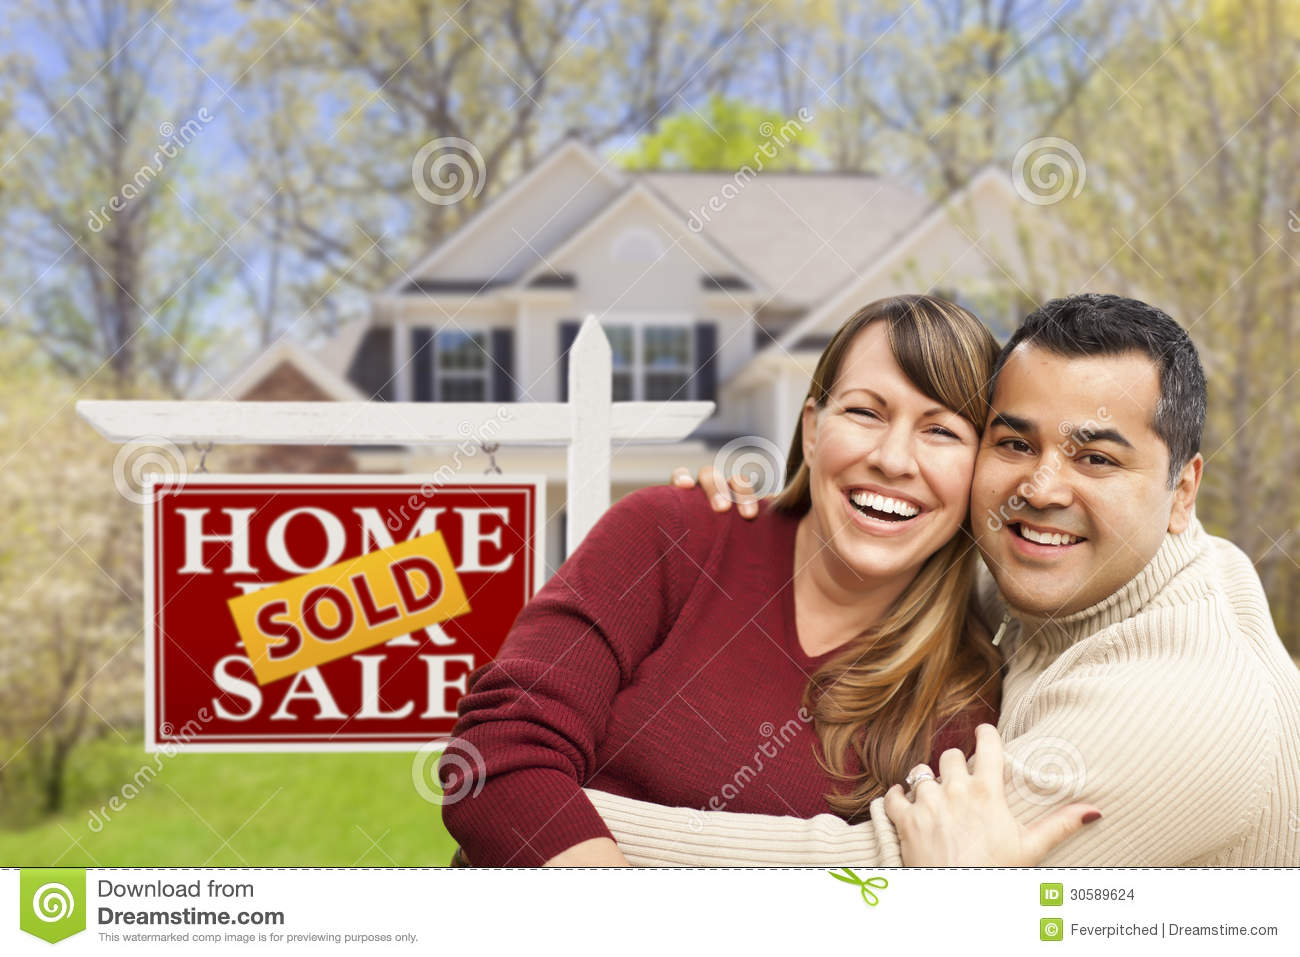 wasaga beach real estate for sale commission free comfree